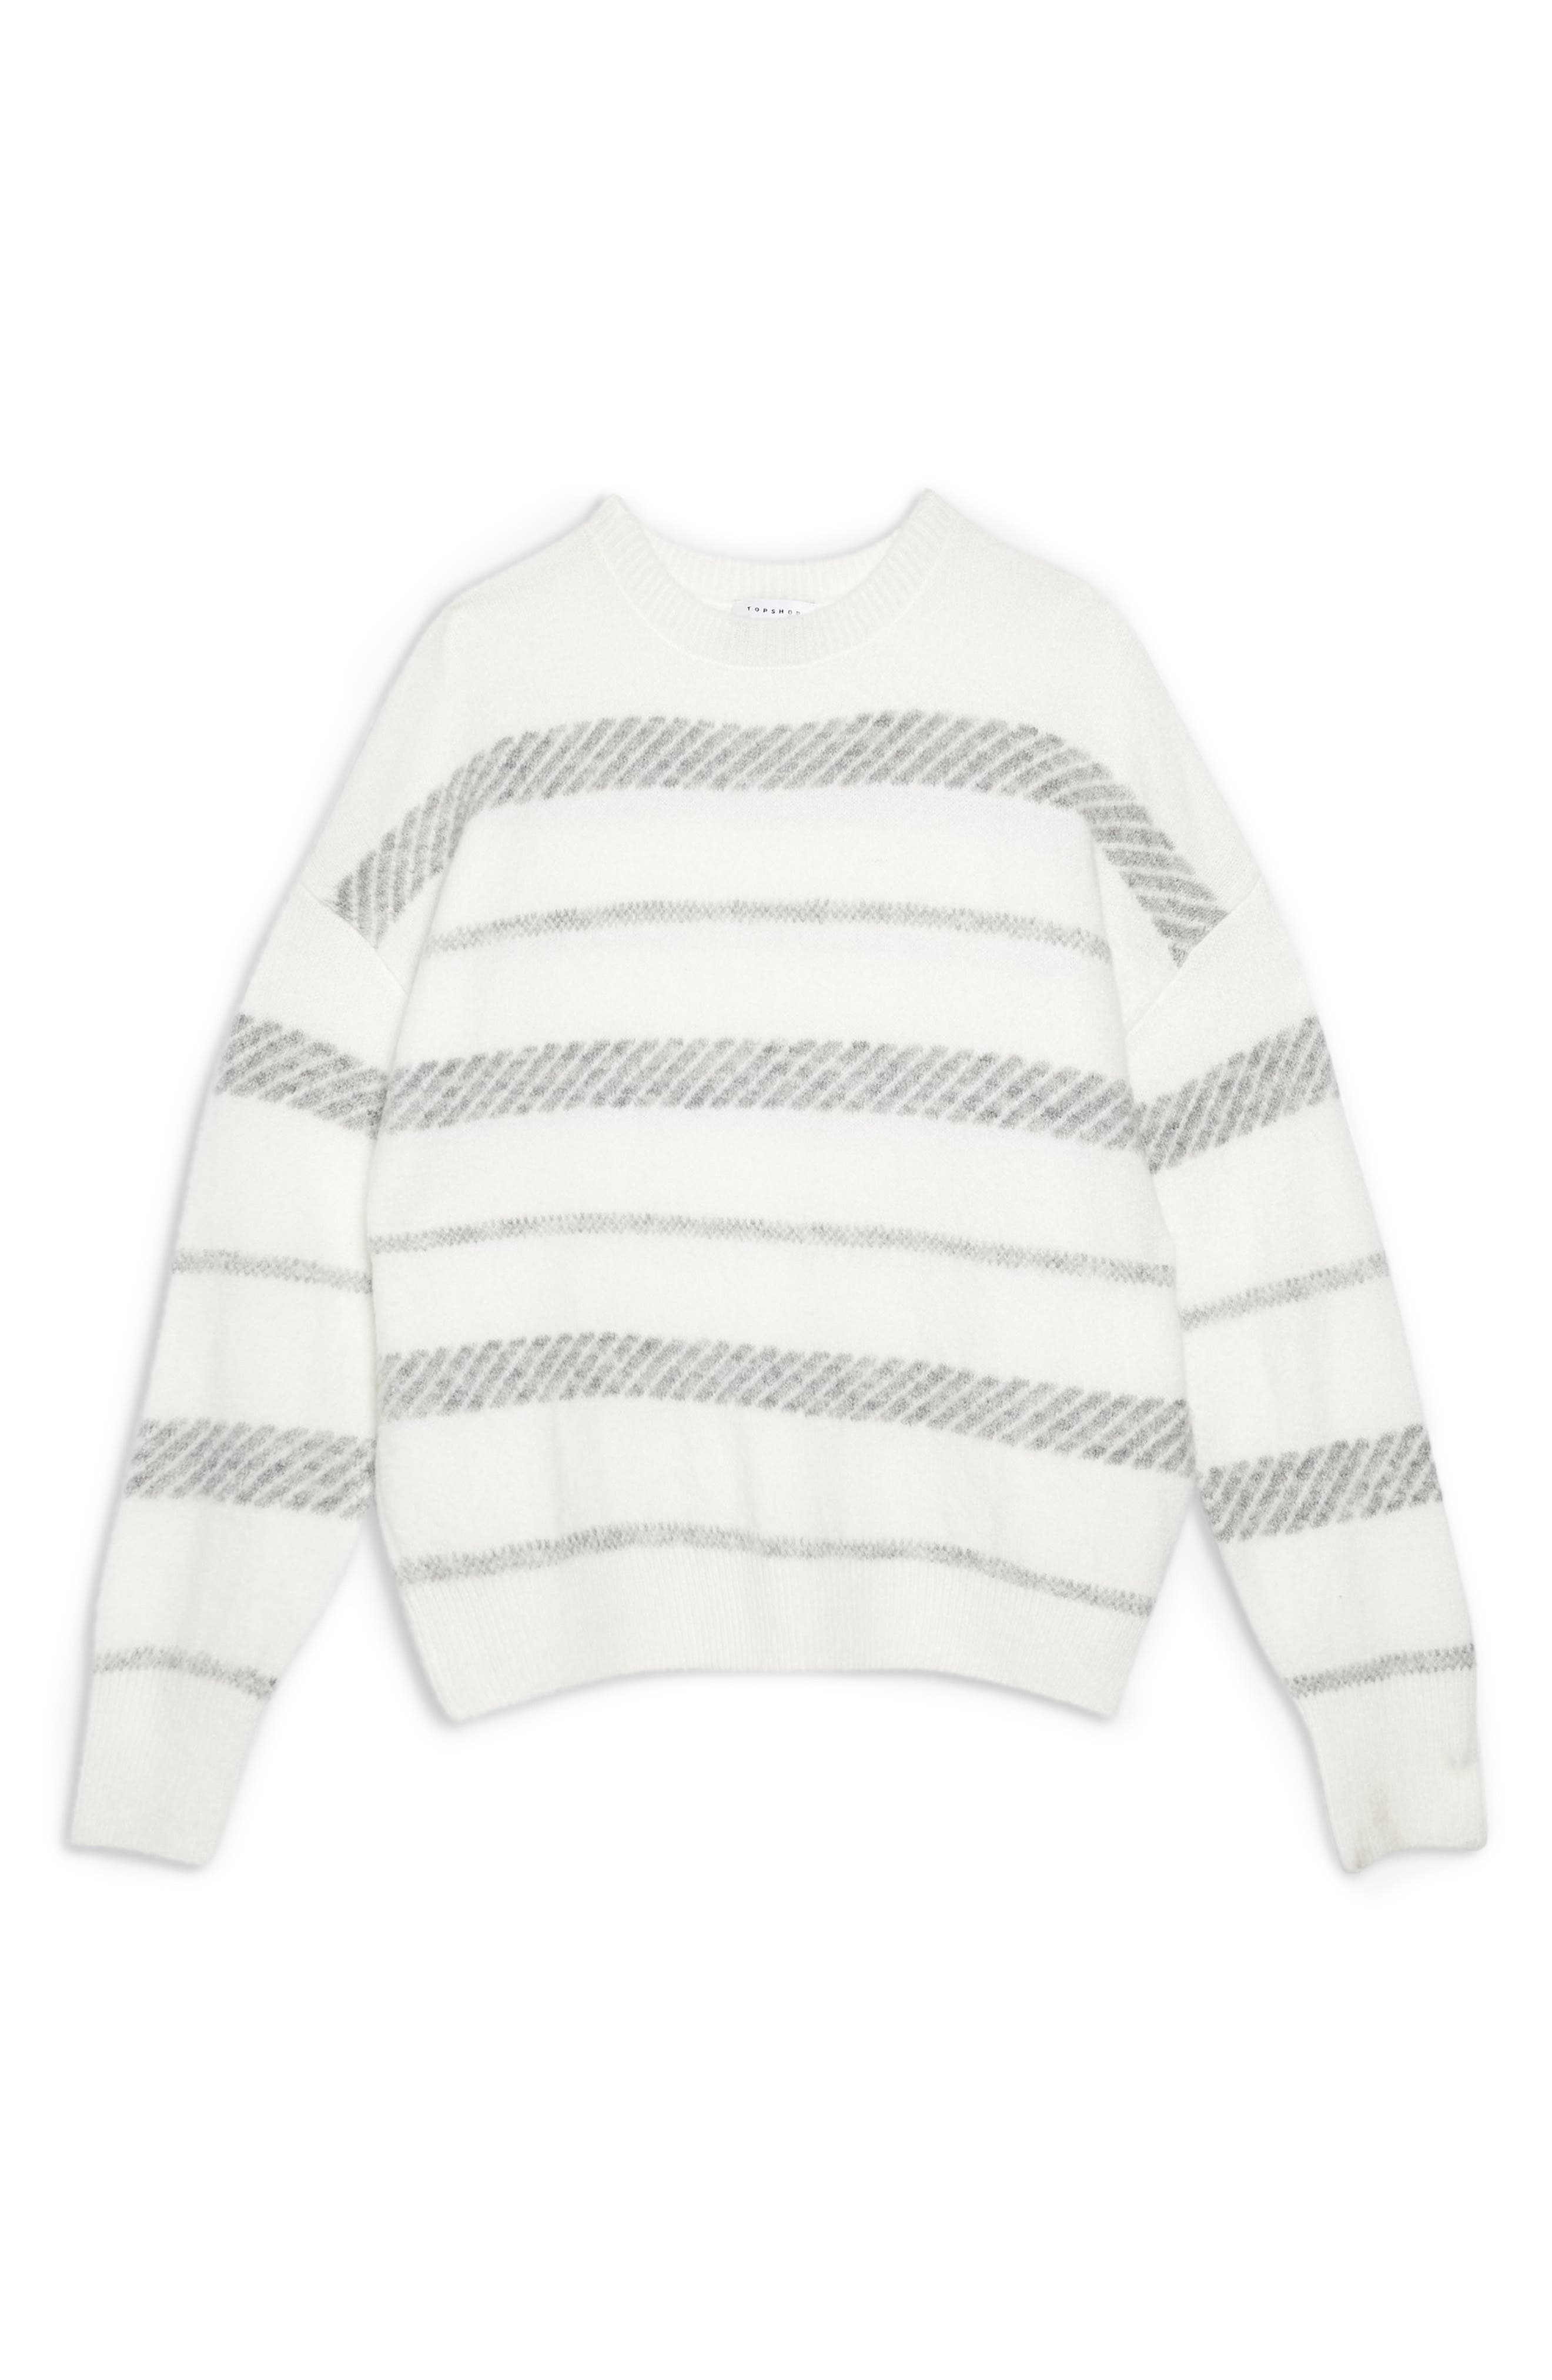 TOPSHOP, Supersoft Stripe Sweater, Alternate thumbnail 3, color, 900